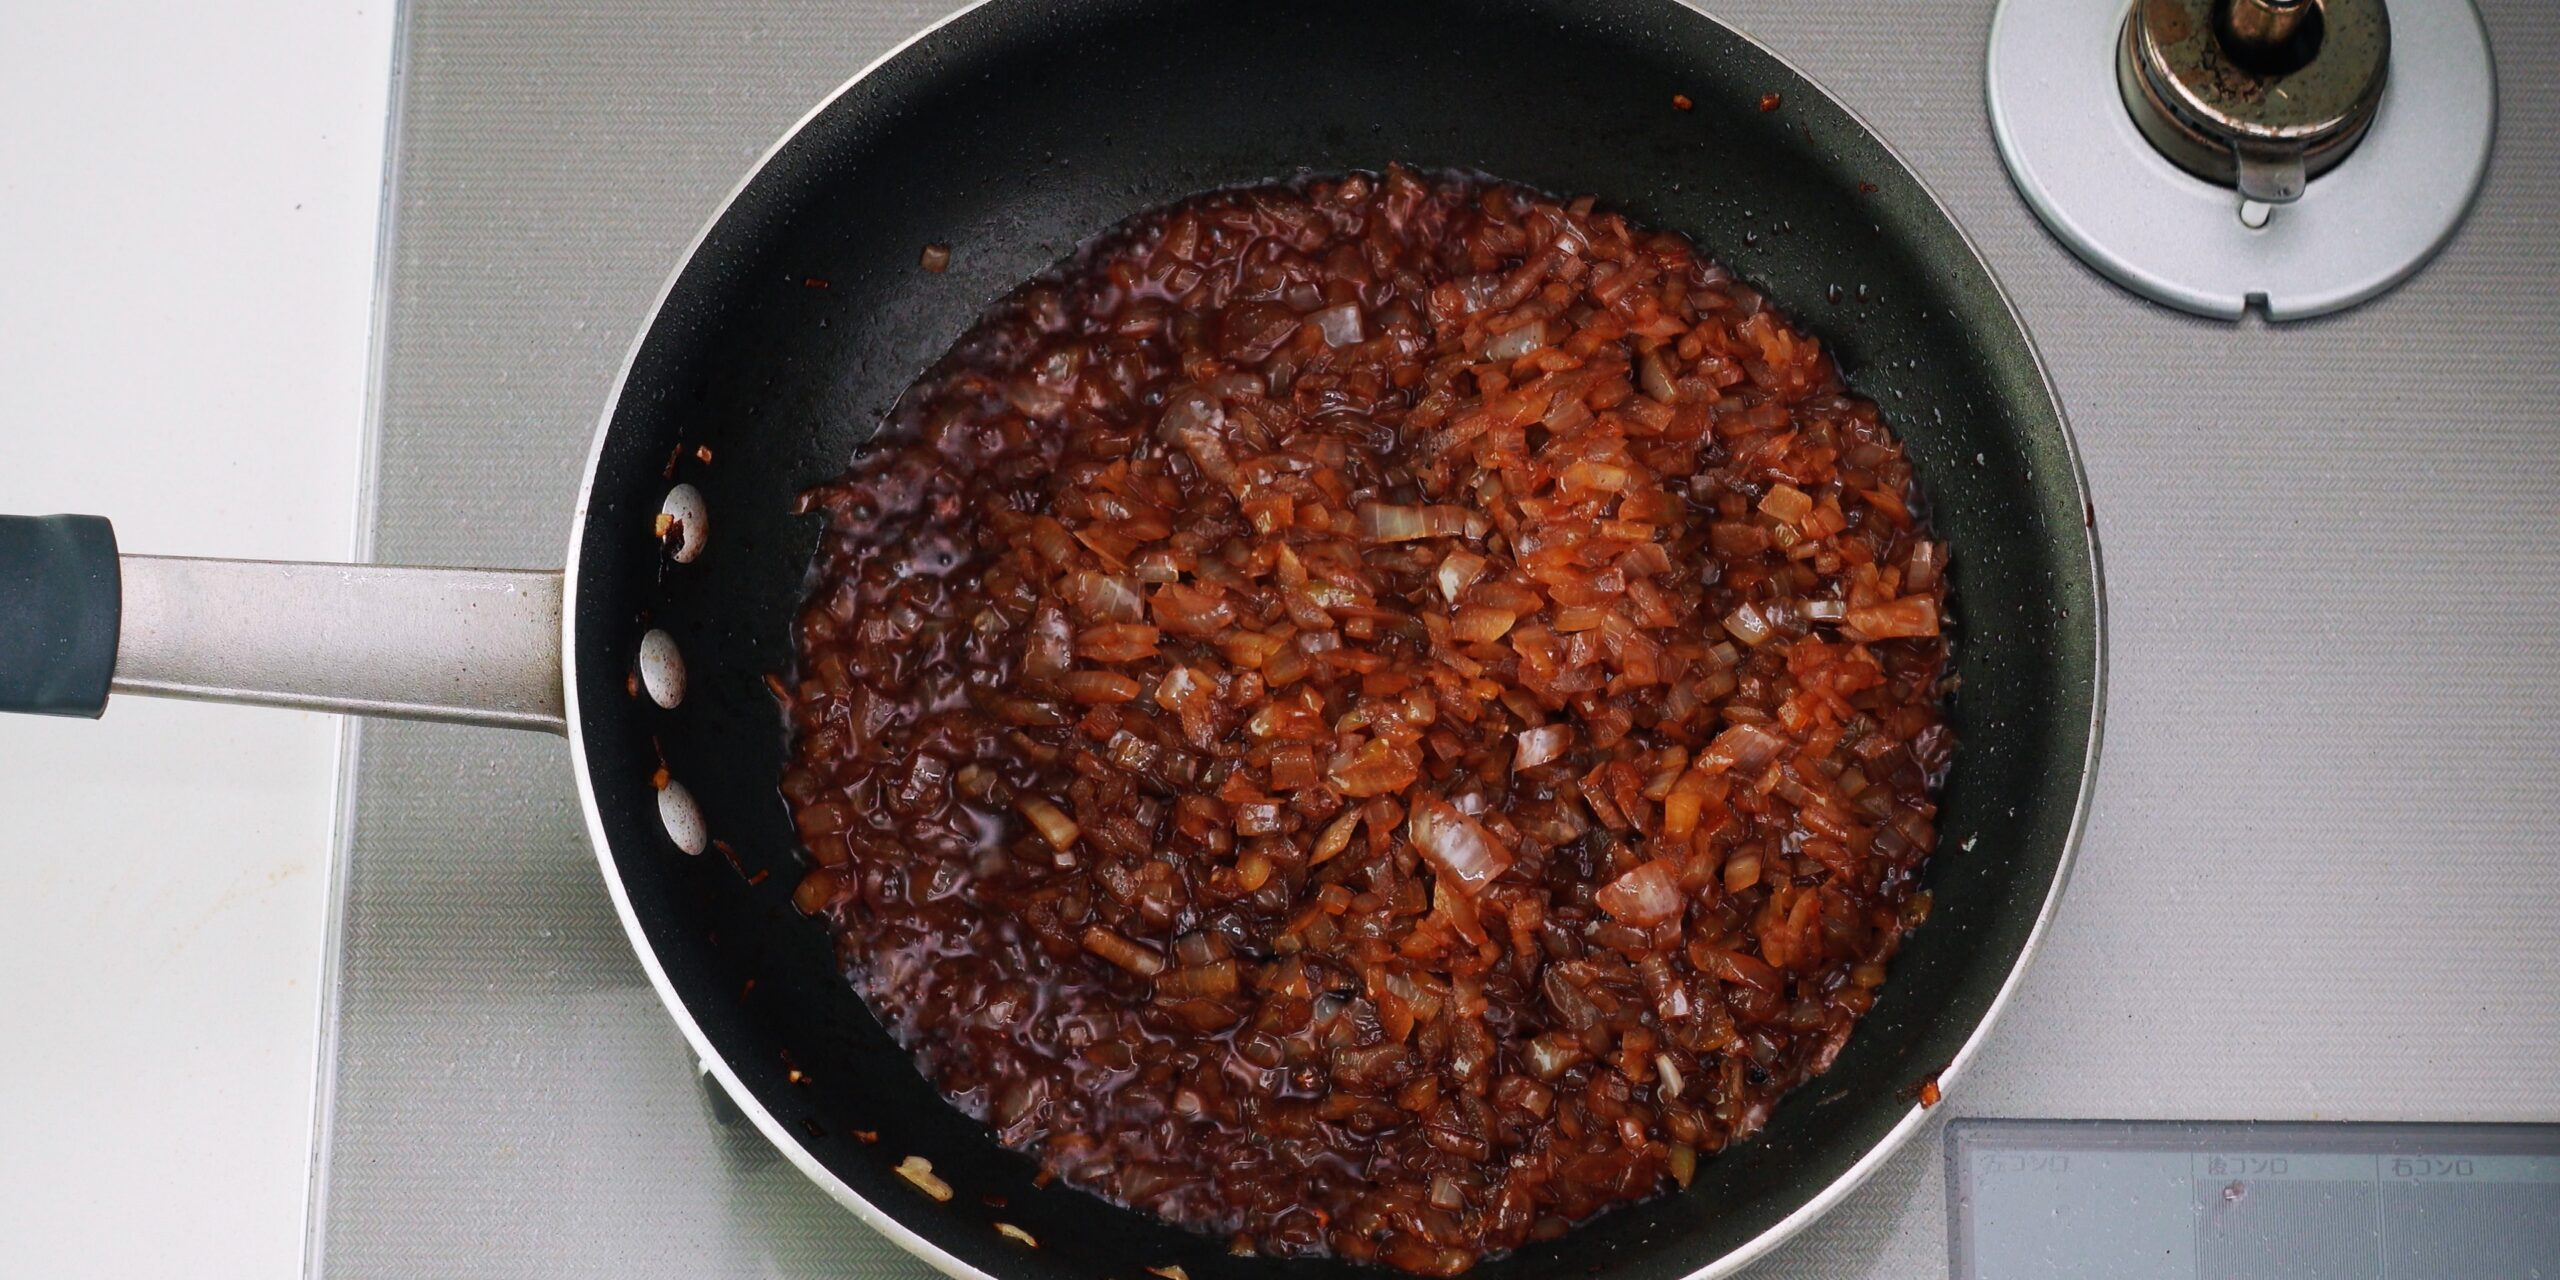 Pan of sauteed onions being deglazed with red wine.